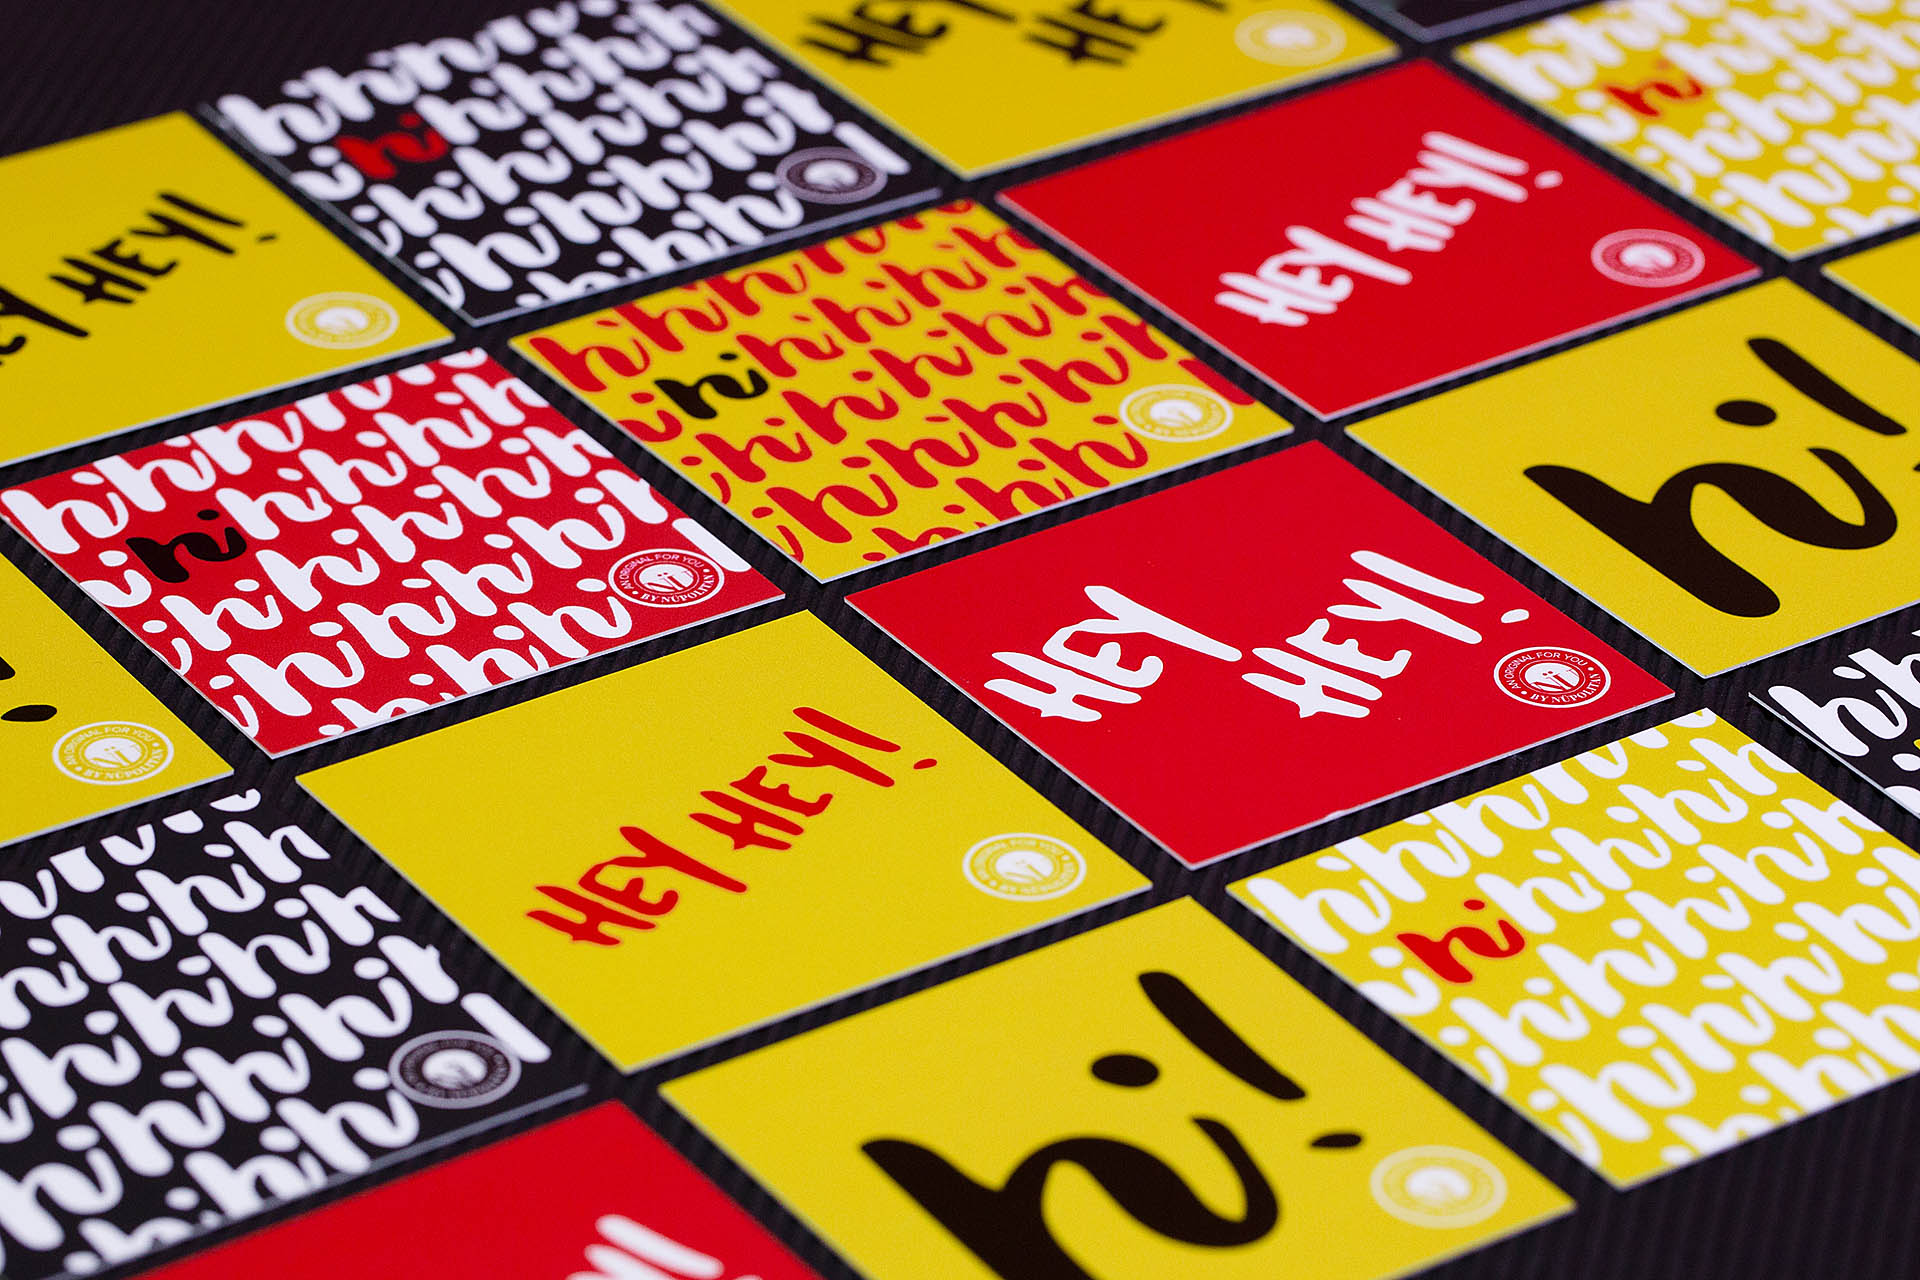 A grid of yellow, red, and black cards with a hi repeating pattern and hey hey printed on them